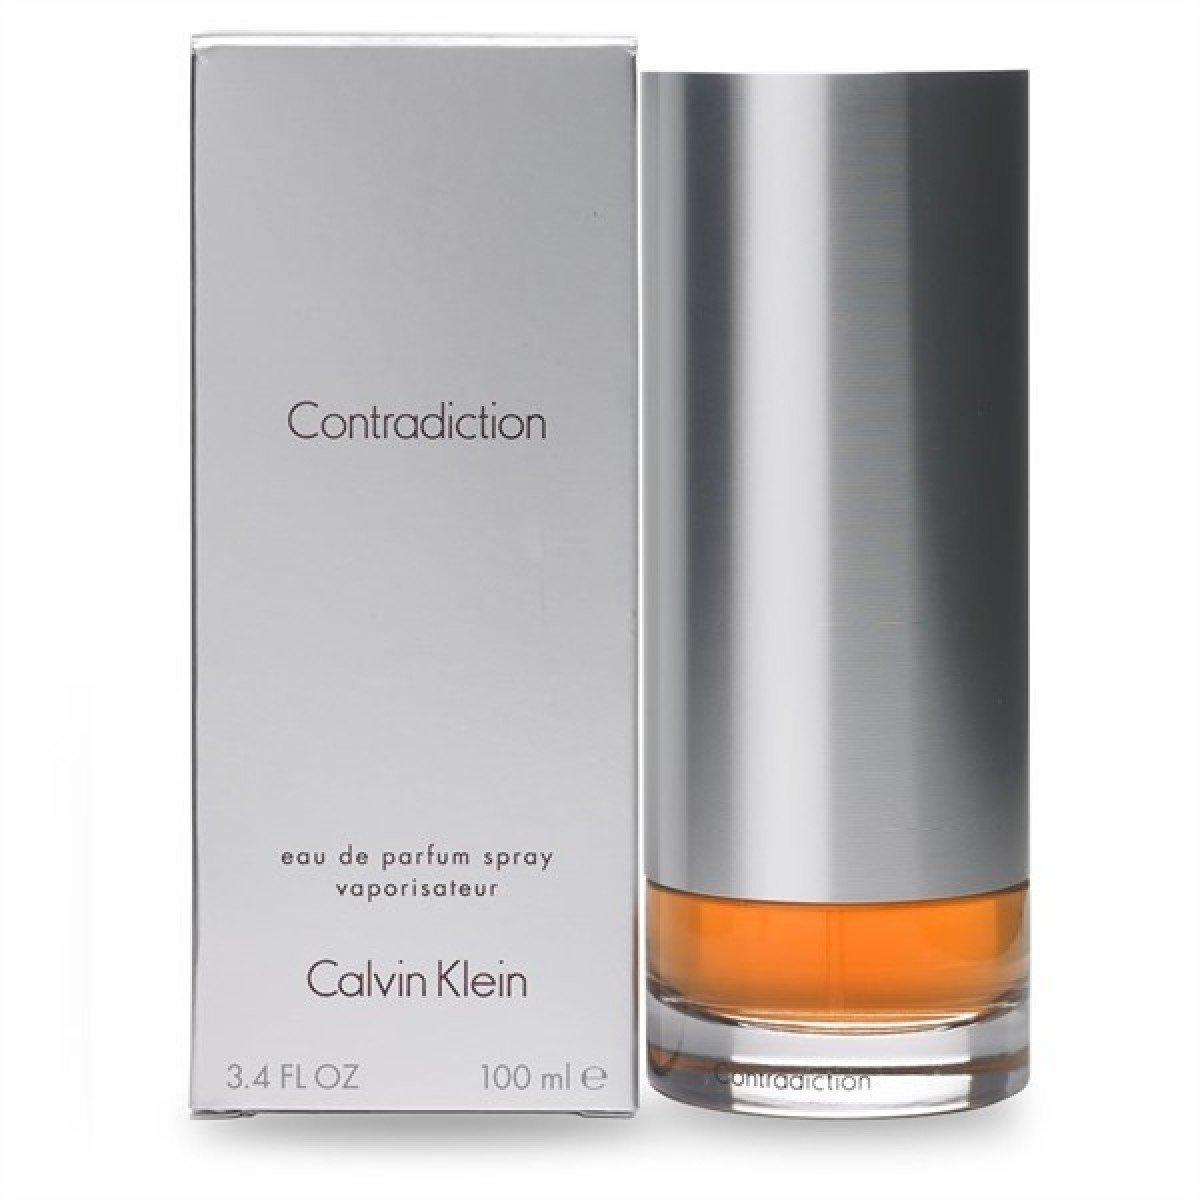 Calvin Klein Contradiction Eau De Parfum Spray for Women